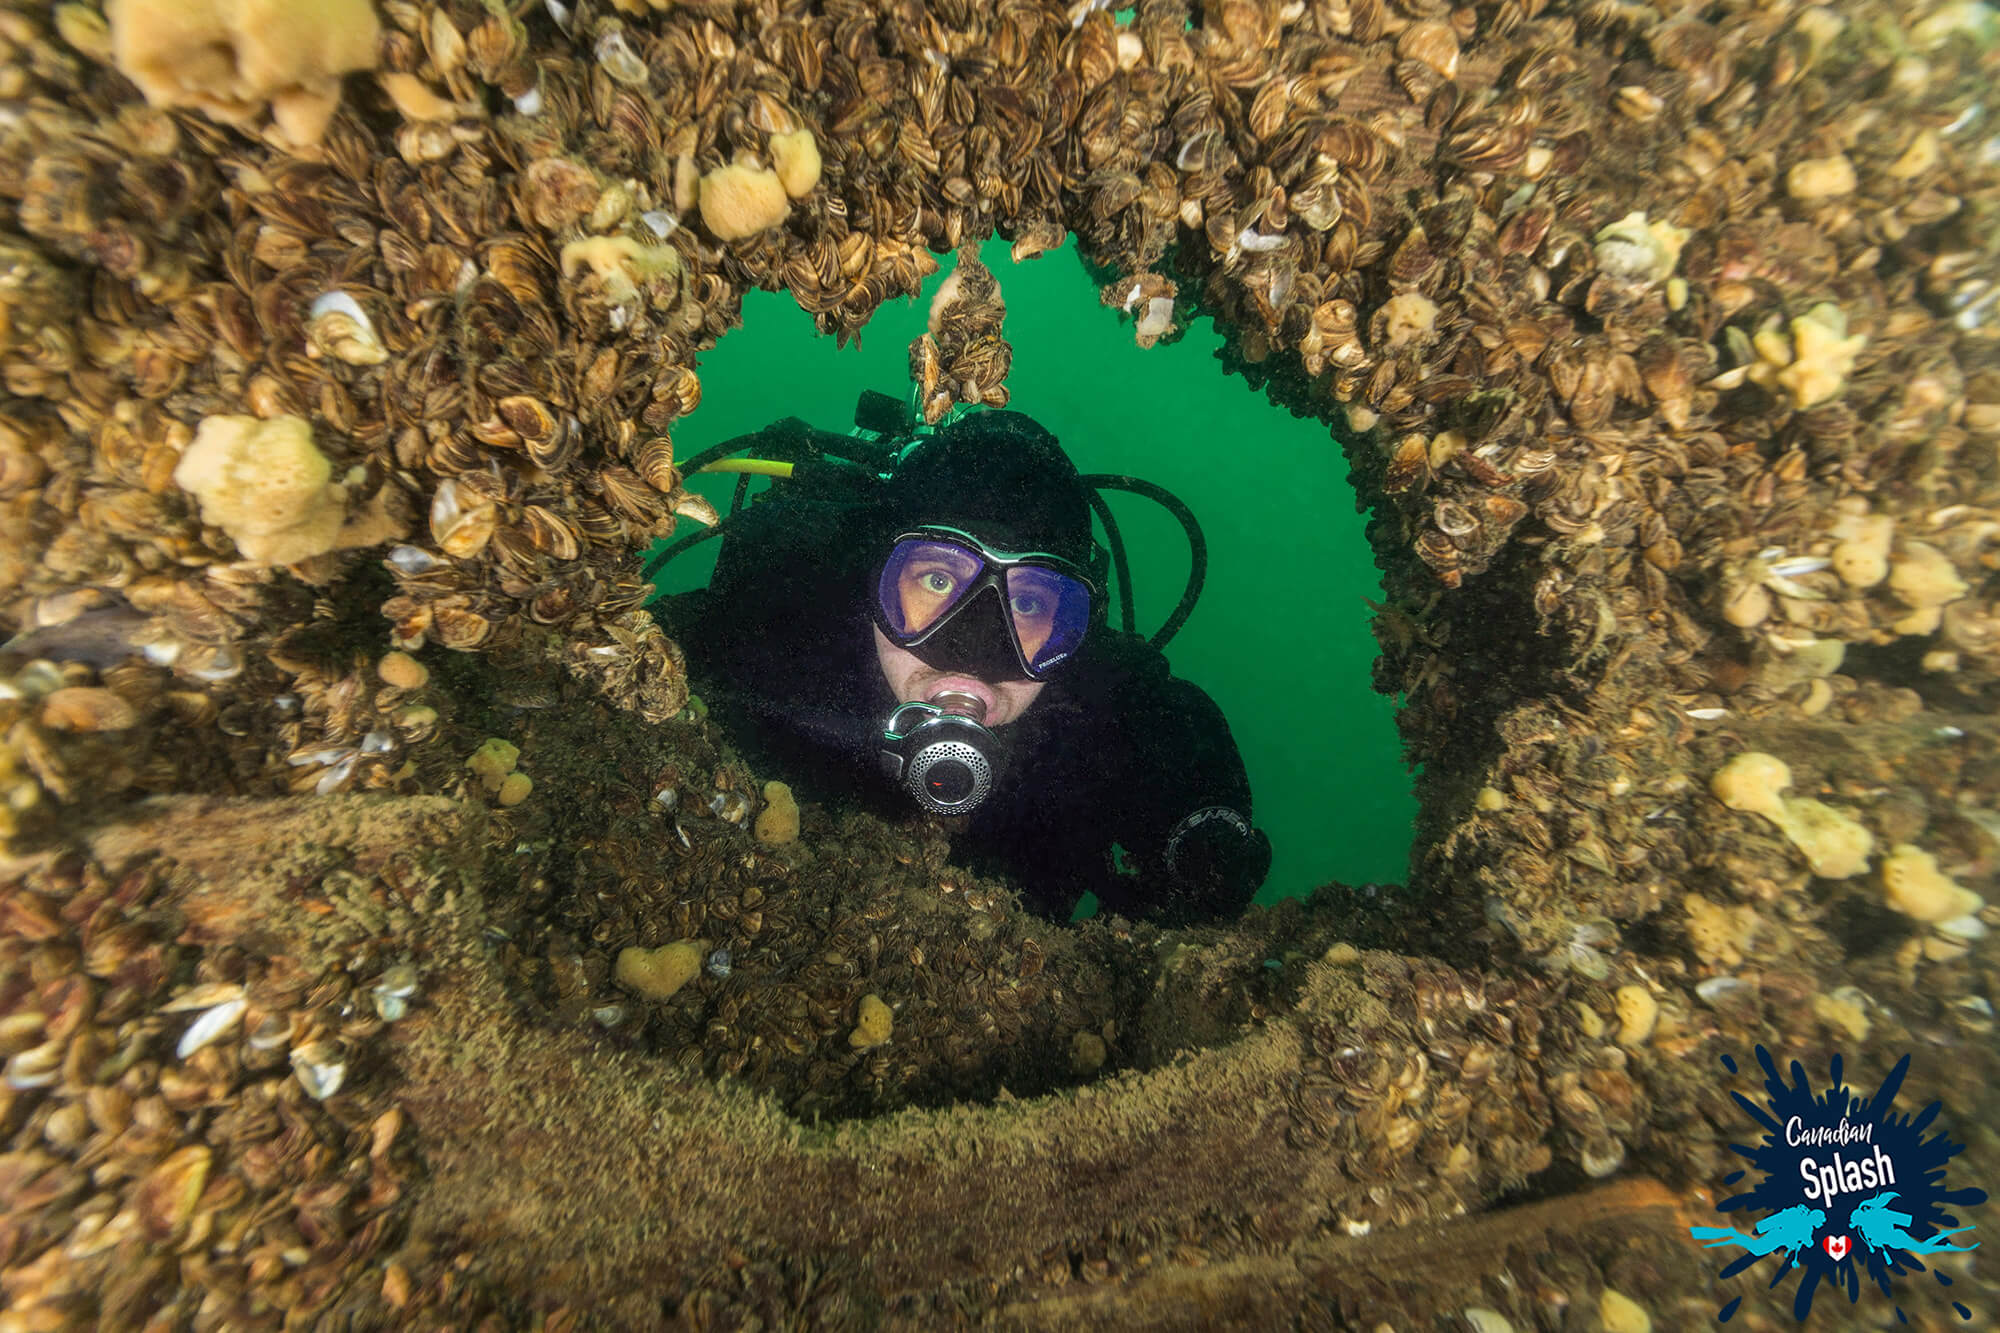 Joey Looking Through The Porthole Of A Shipwreck While Scuba Diving In Brockville, Ontario For Canadian Splash